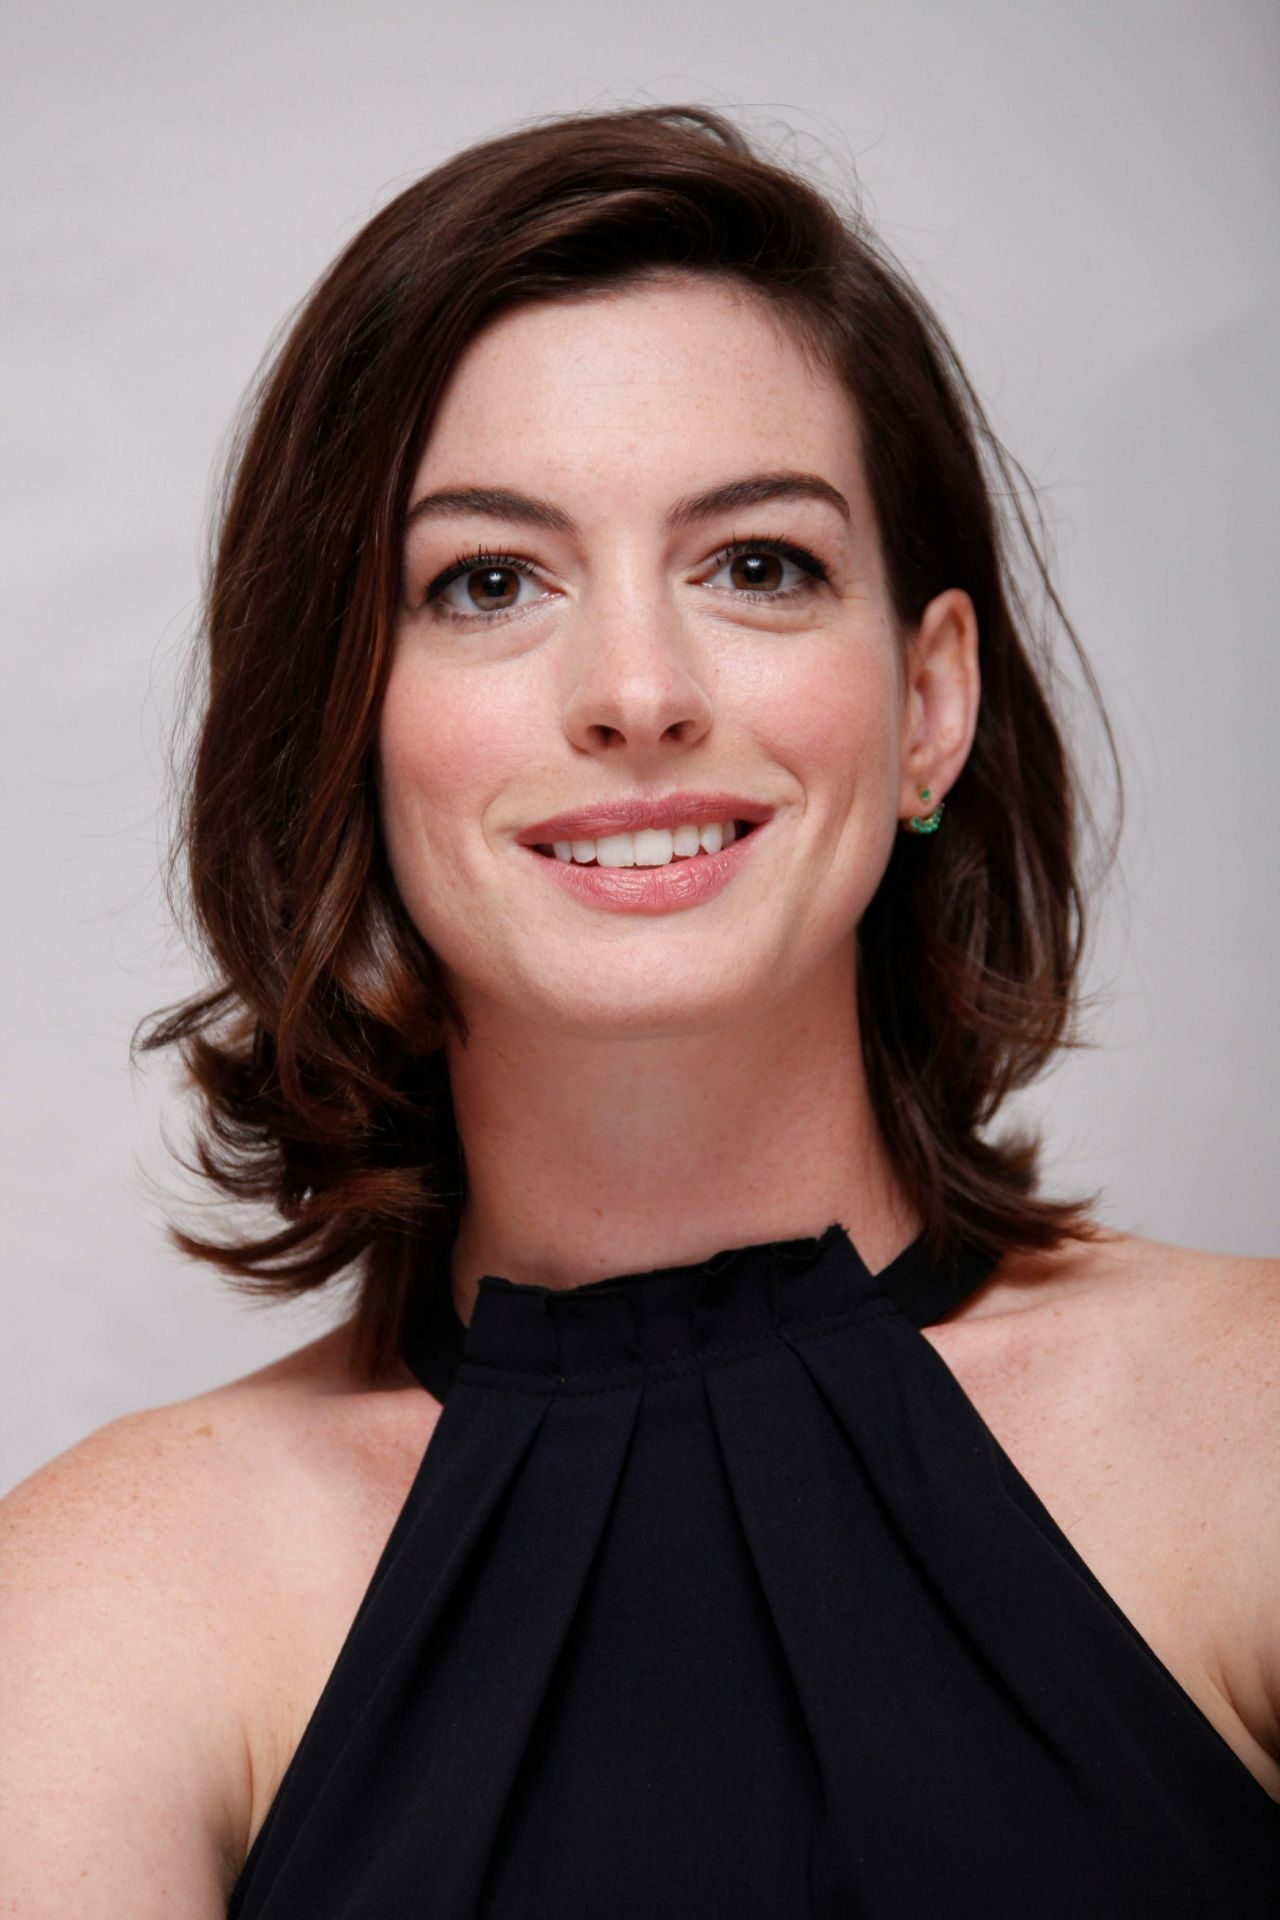 Anne Hathaway - 'The Intern' Press Conference, August 2015 Anne Hathaway